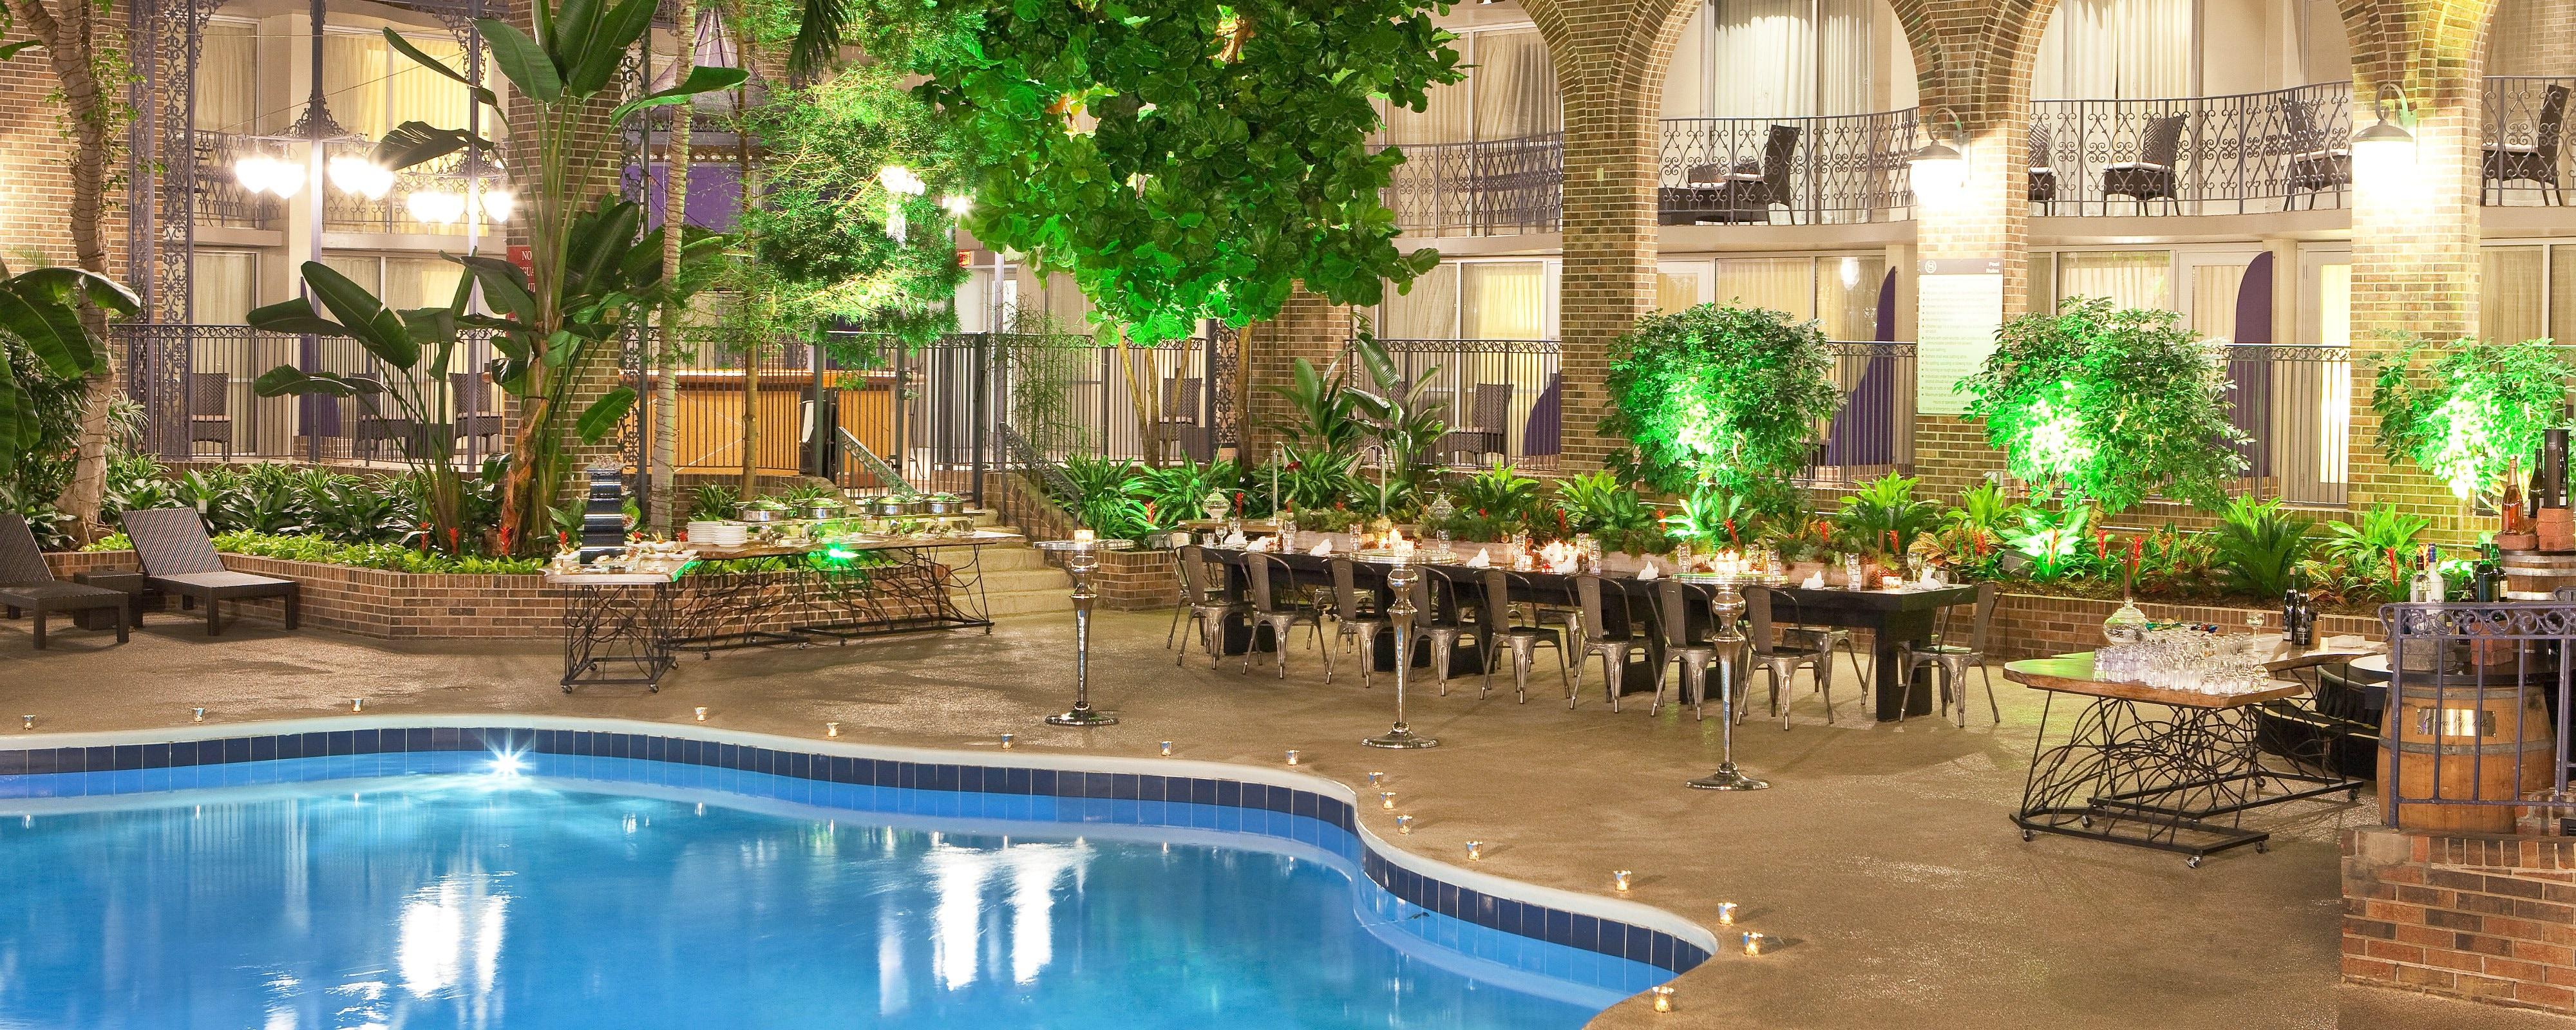 Poolside Function Overview